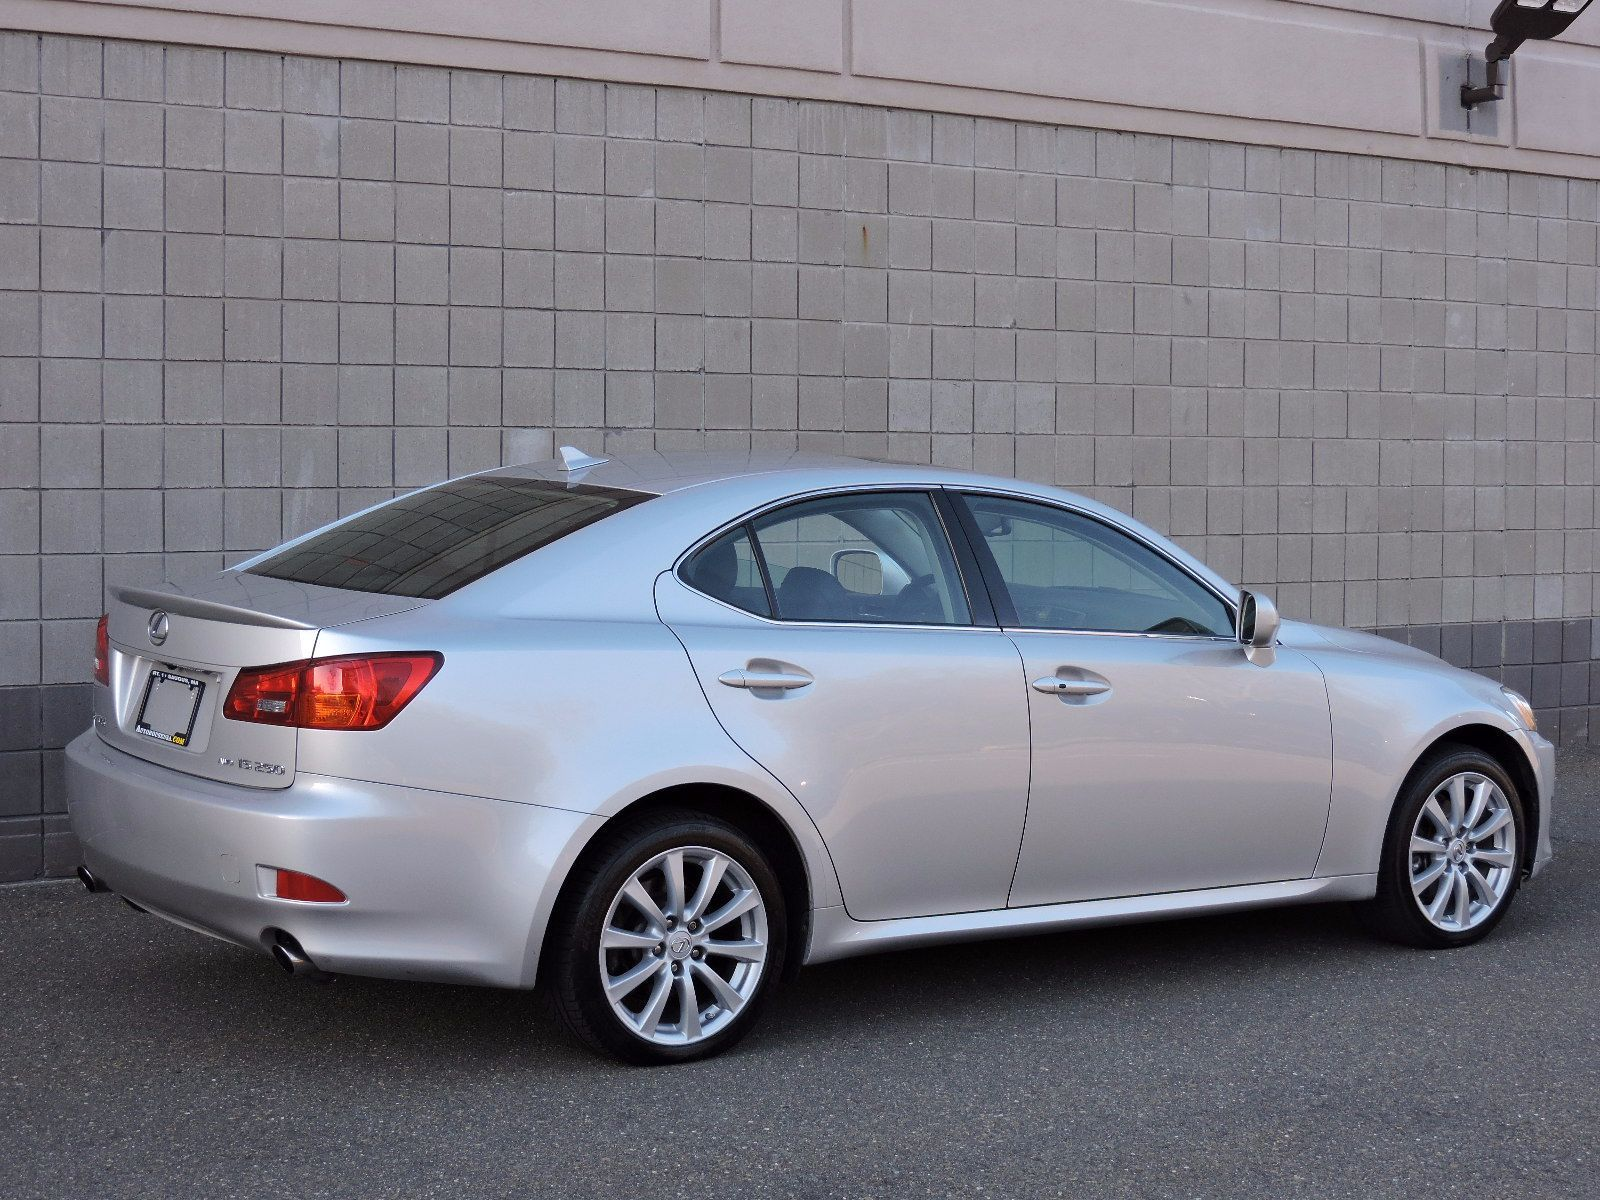 used 2008 lexus is 250 wrx 5 speed all wheel drive at auto house usa saugus. Black Bedroom Furniture Sets. Home Design Ideas